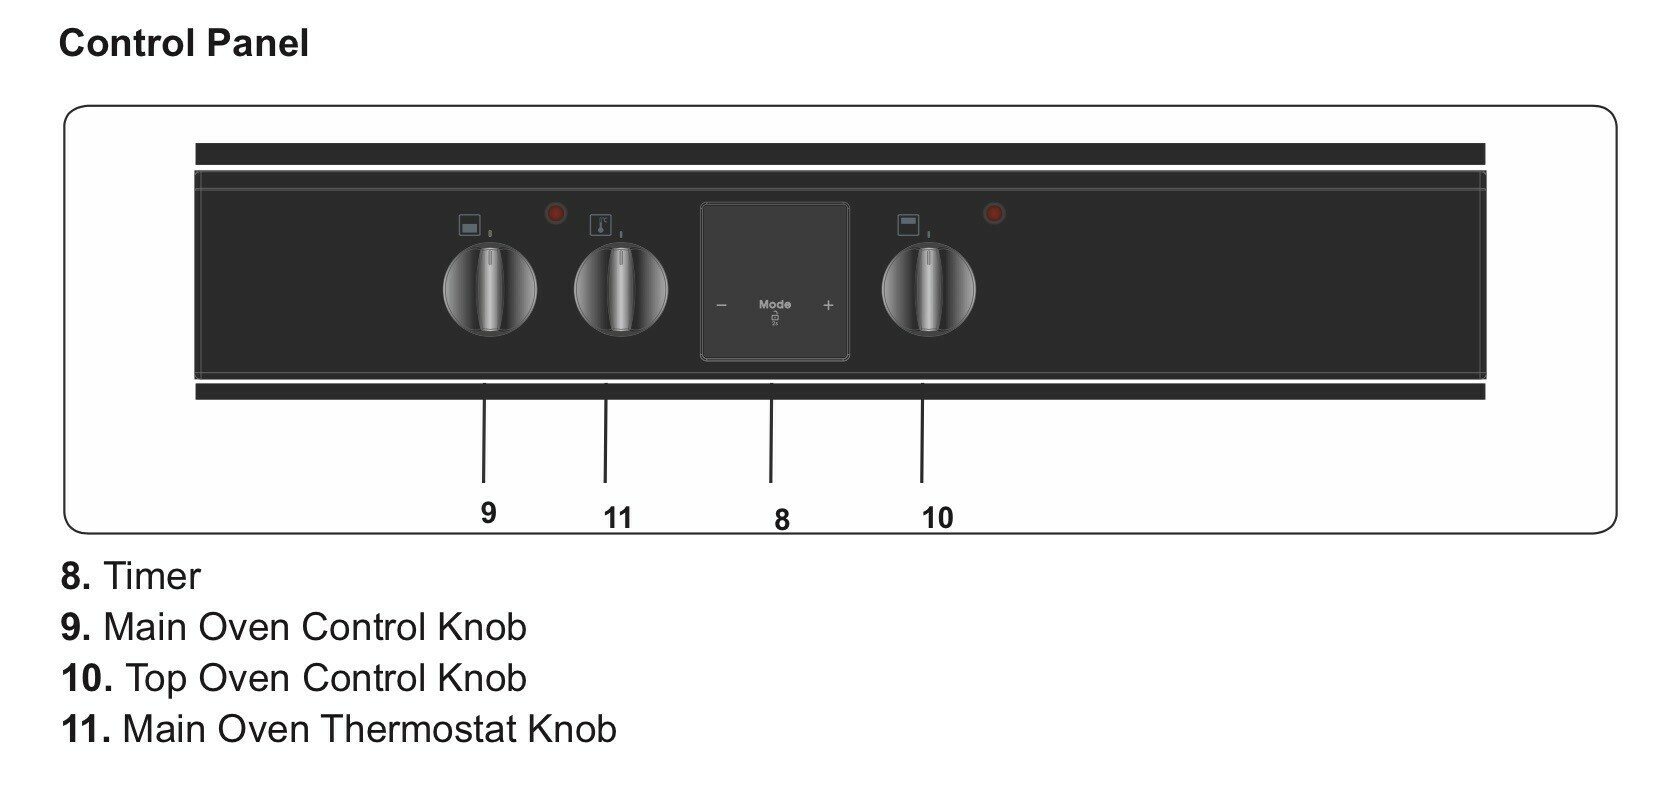 Diagram showing knobs and their uses, but the order is very mixed up.